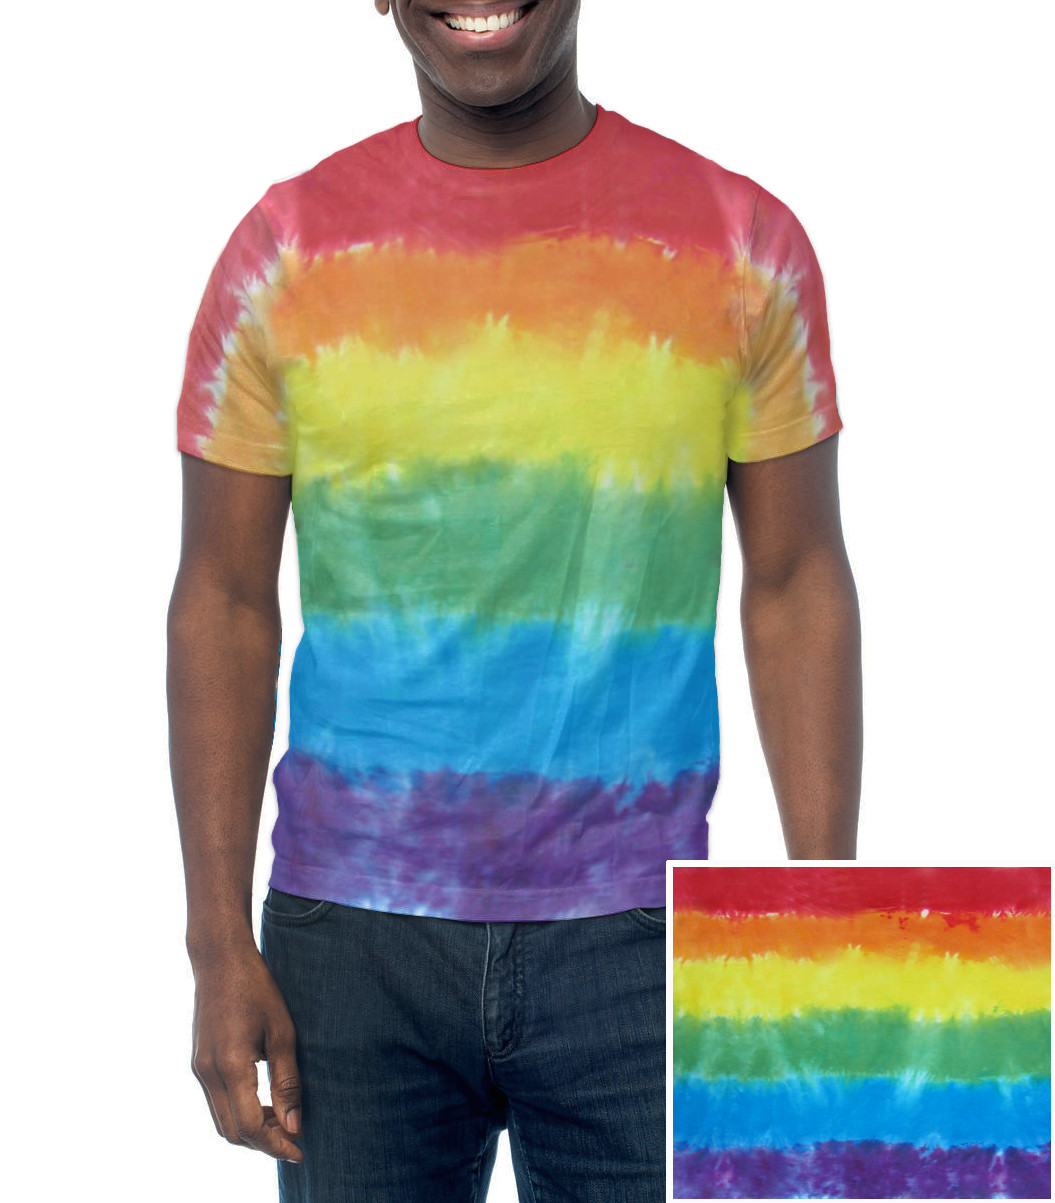 Image of Rainbow Flag Tie Dye T-Shirt Handmade ∧ Unique LGBT Lesbian and Gay Pride Apparel and Clothes. LGBT Gay Pride T-Shirt Pride Clothing